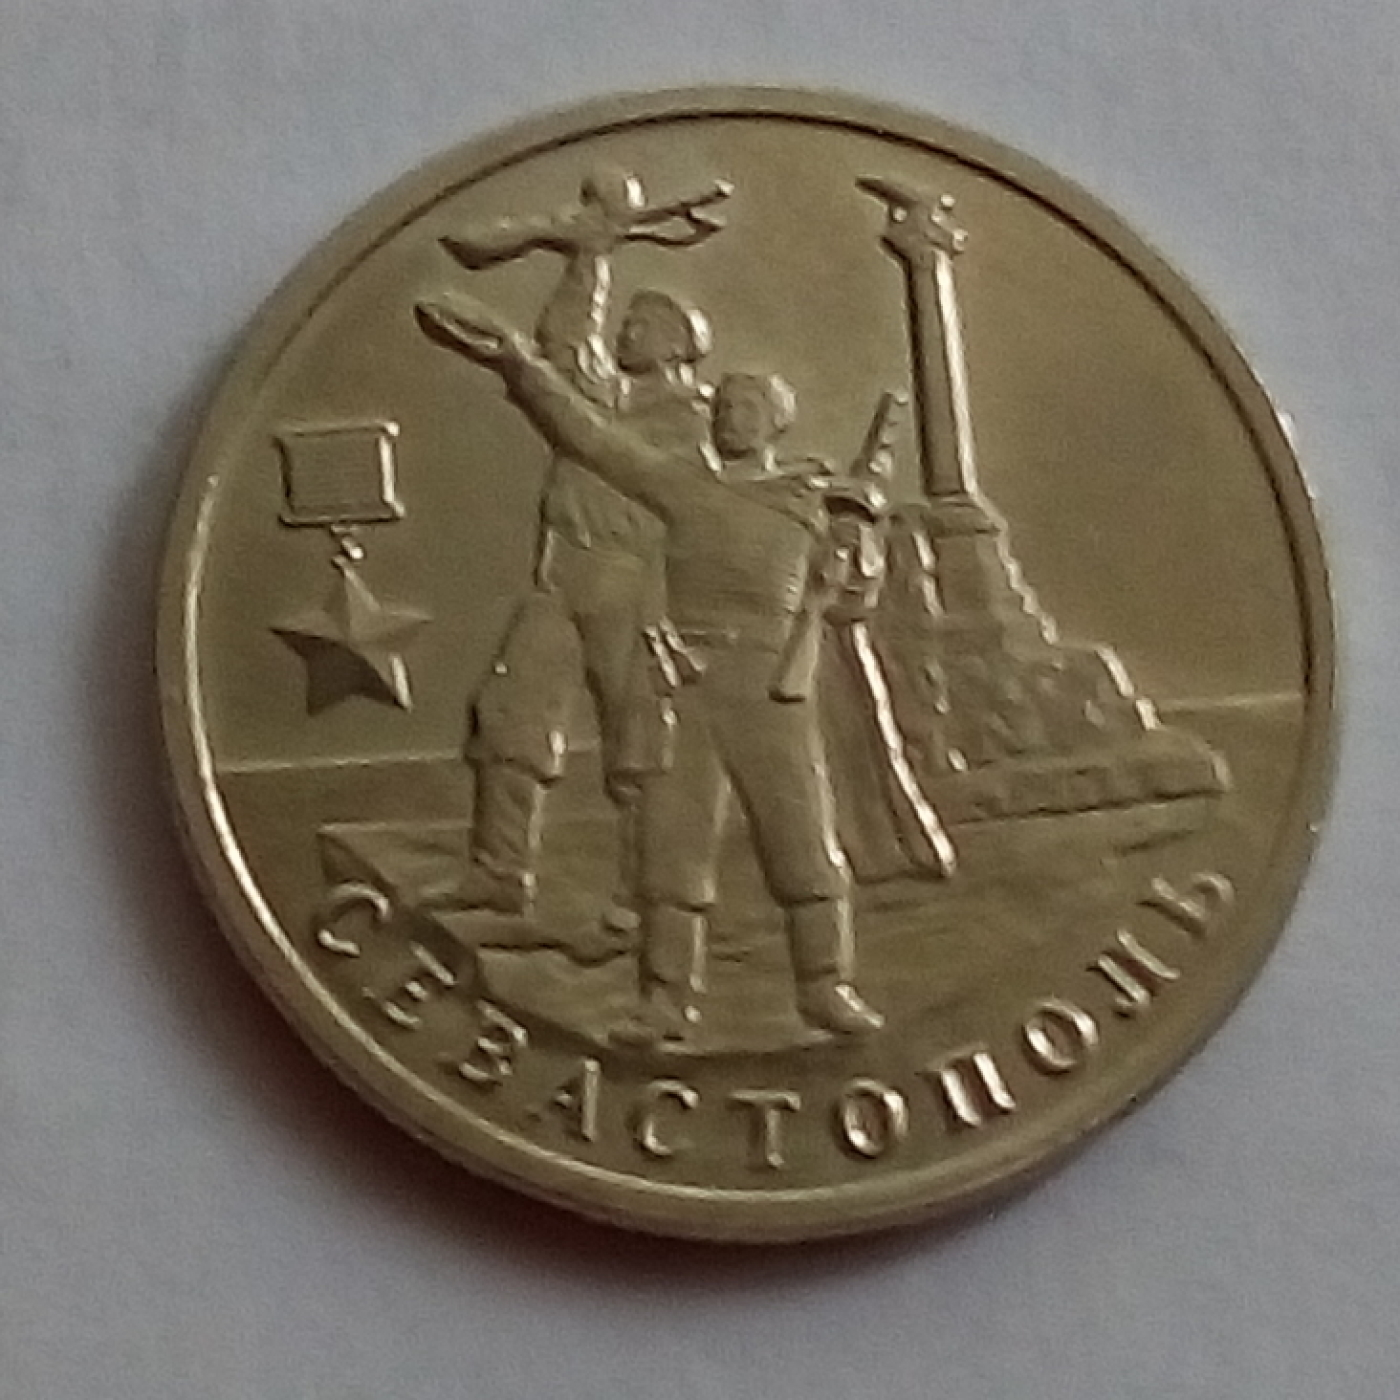 Russia 2 coins set 2 roubles 2017 Kerch and Sevastopol #3403